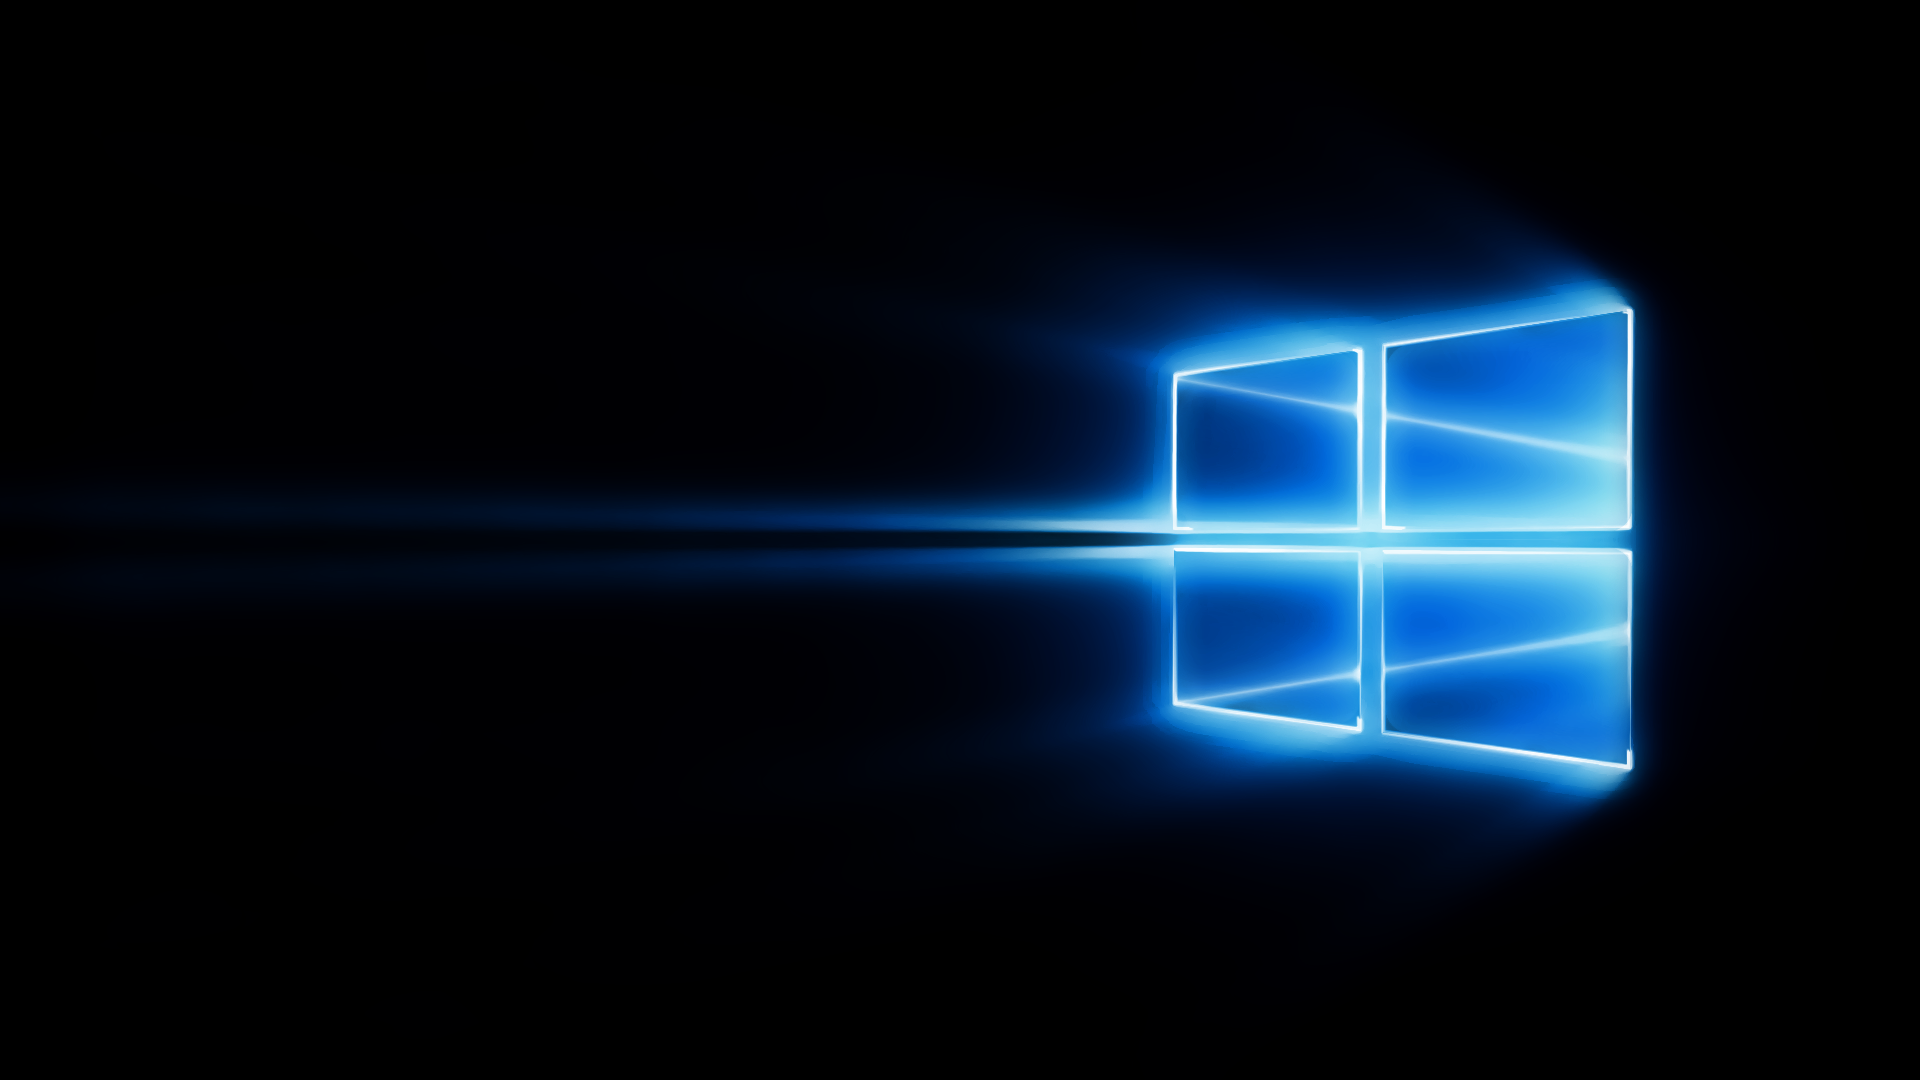 Windows 10 high def wallpaper wallpapersafari for Window definition